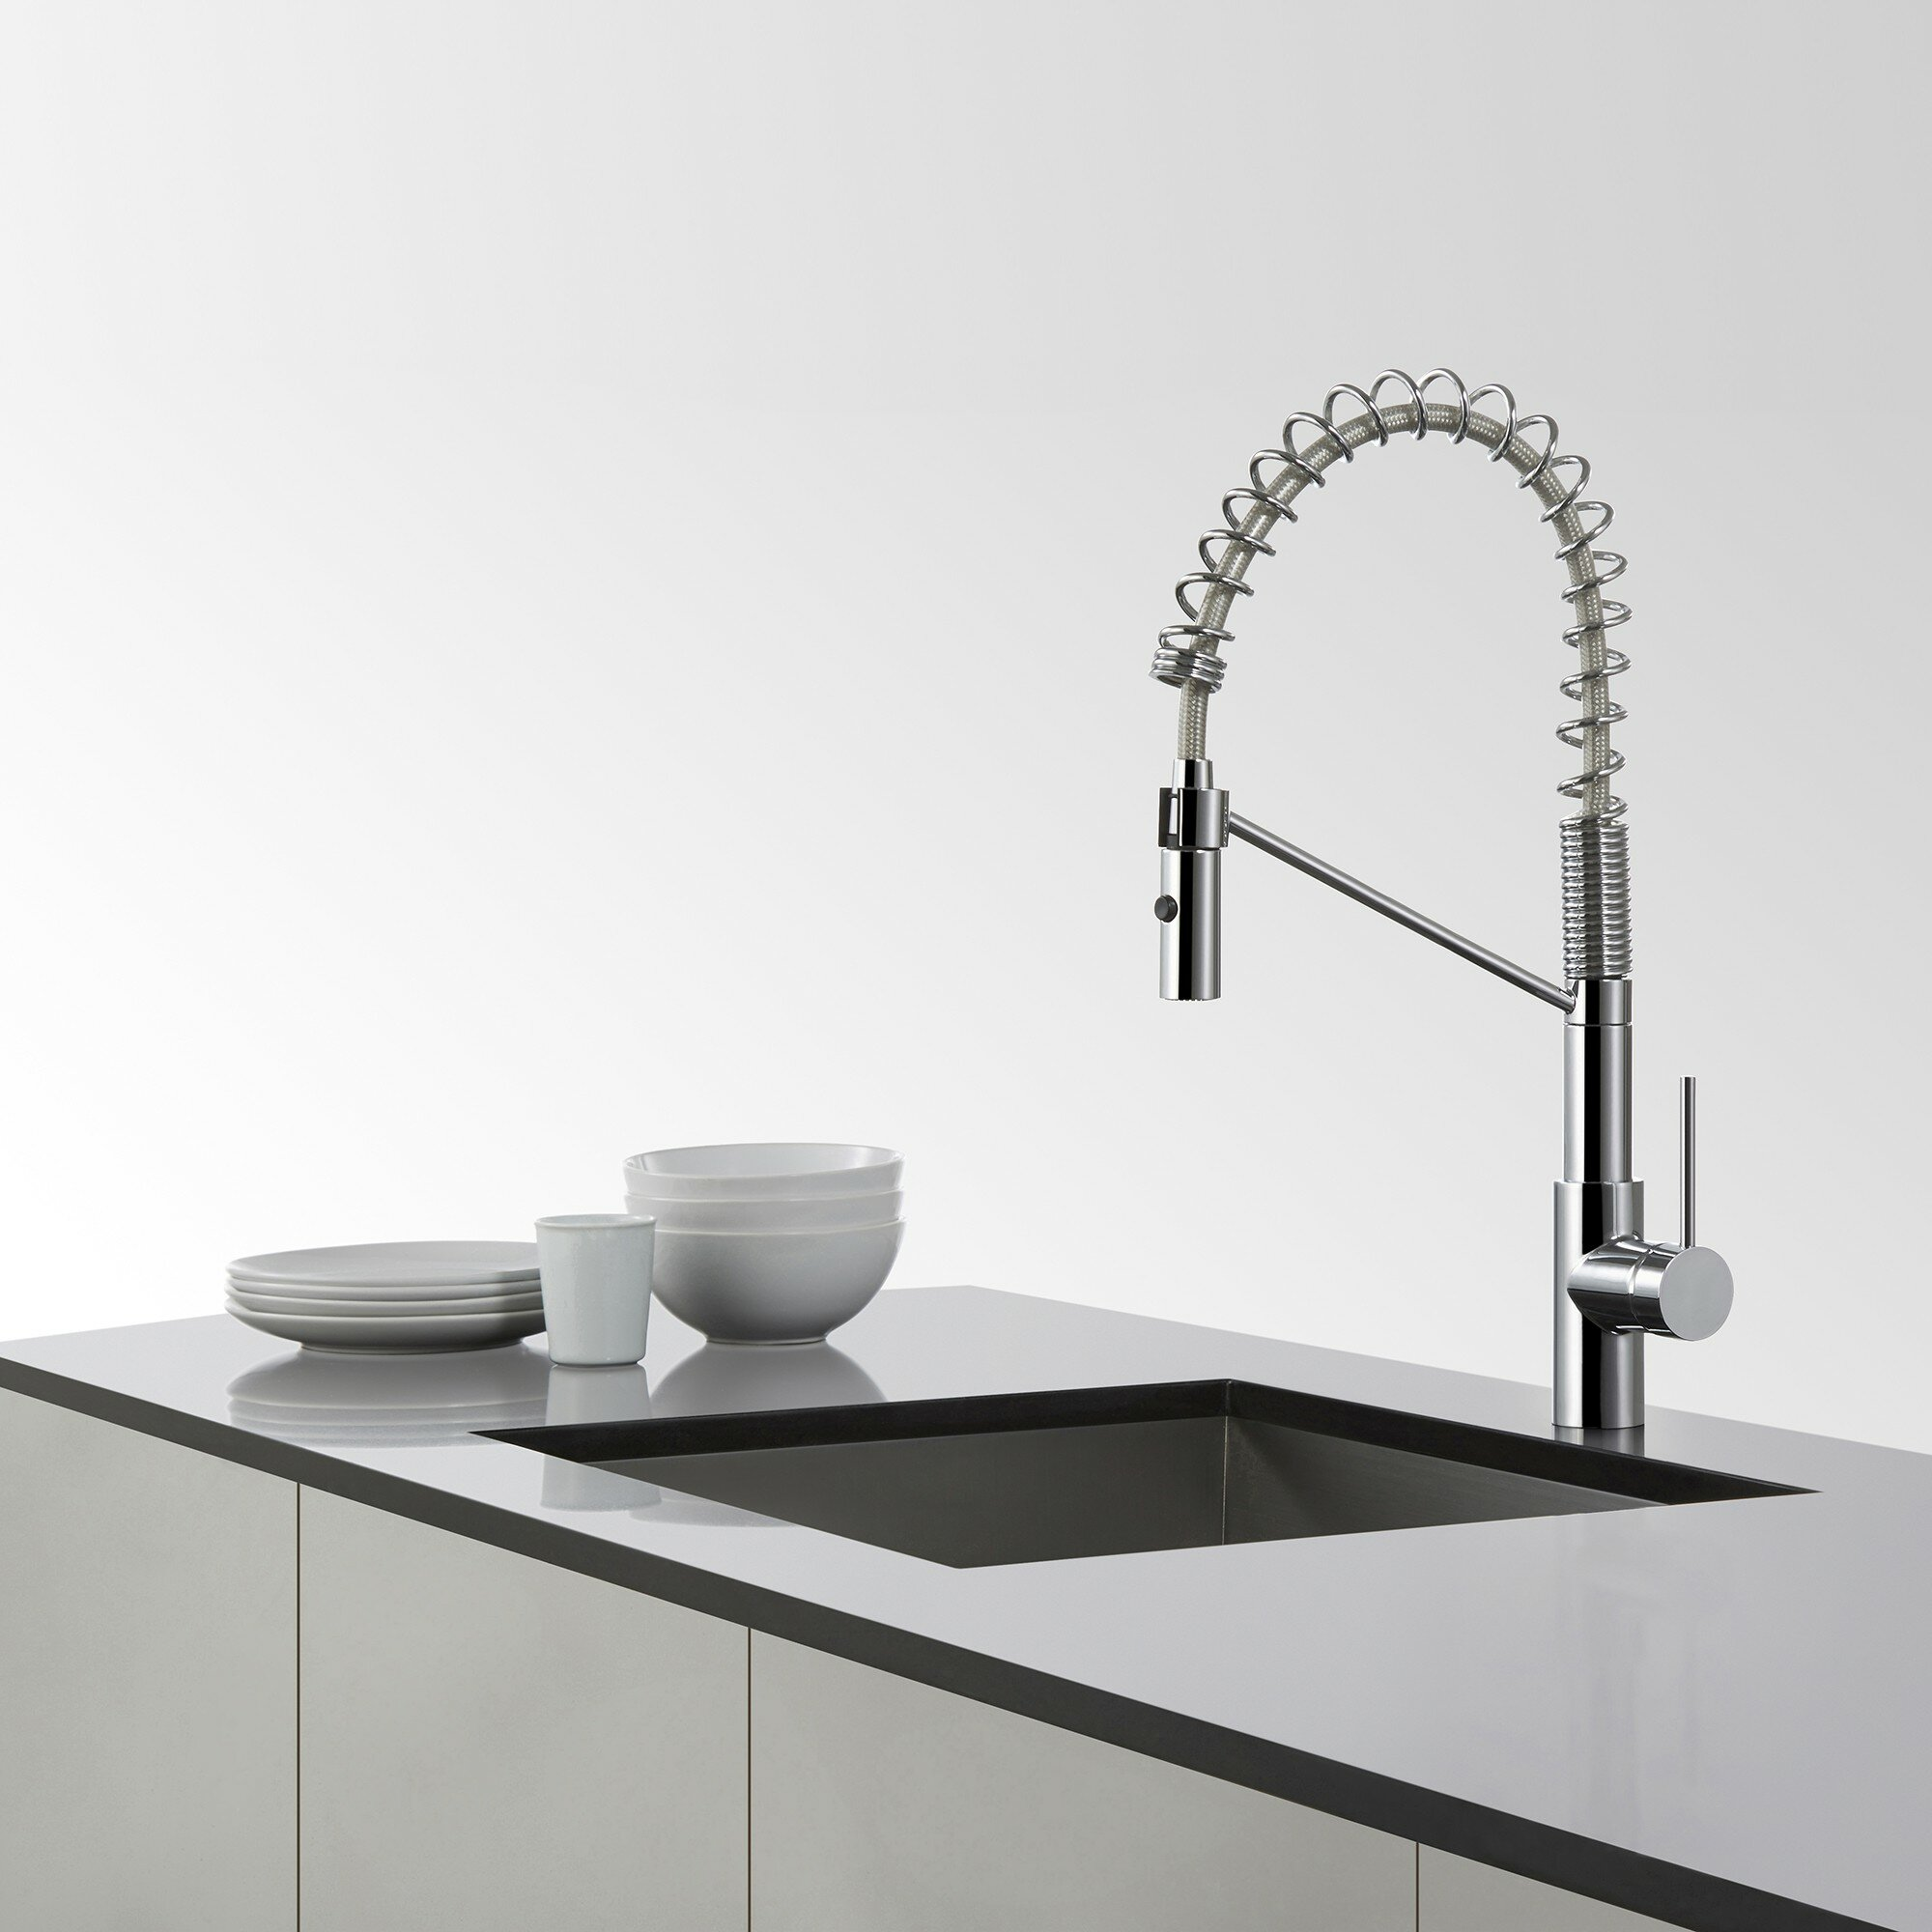 Industrial Style Kitchen Faucet: Kraus Oletto Commercial Style Kitchen Faucet W Bar/Prep